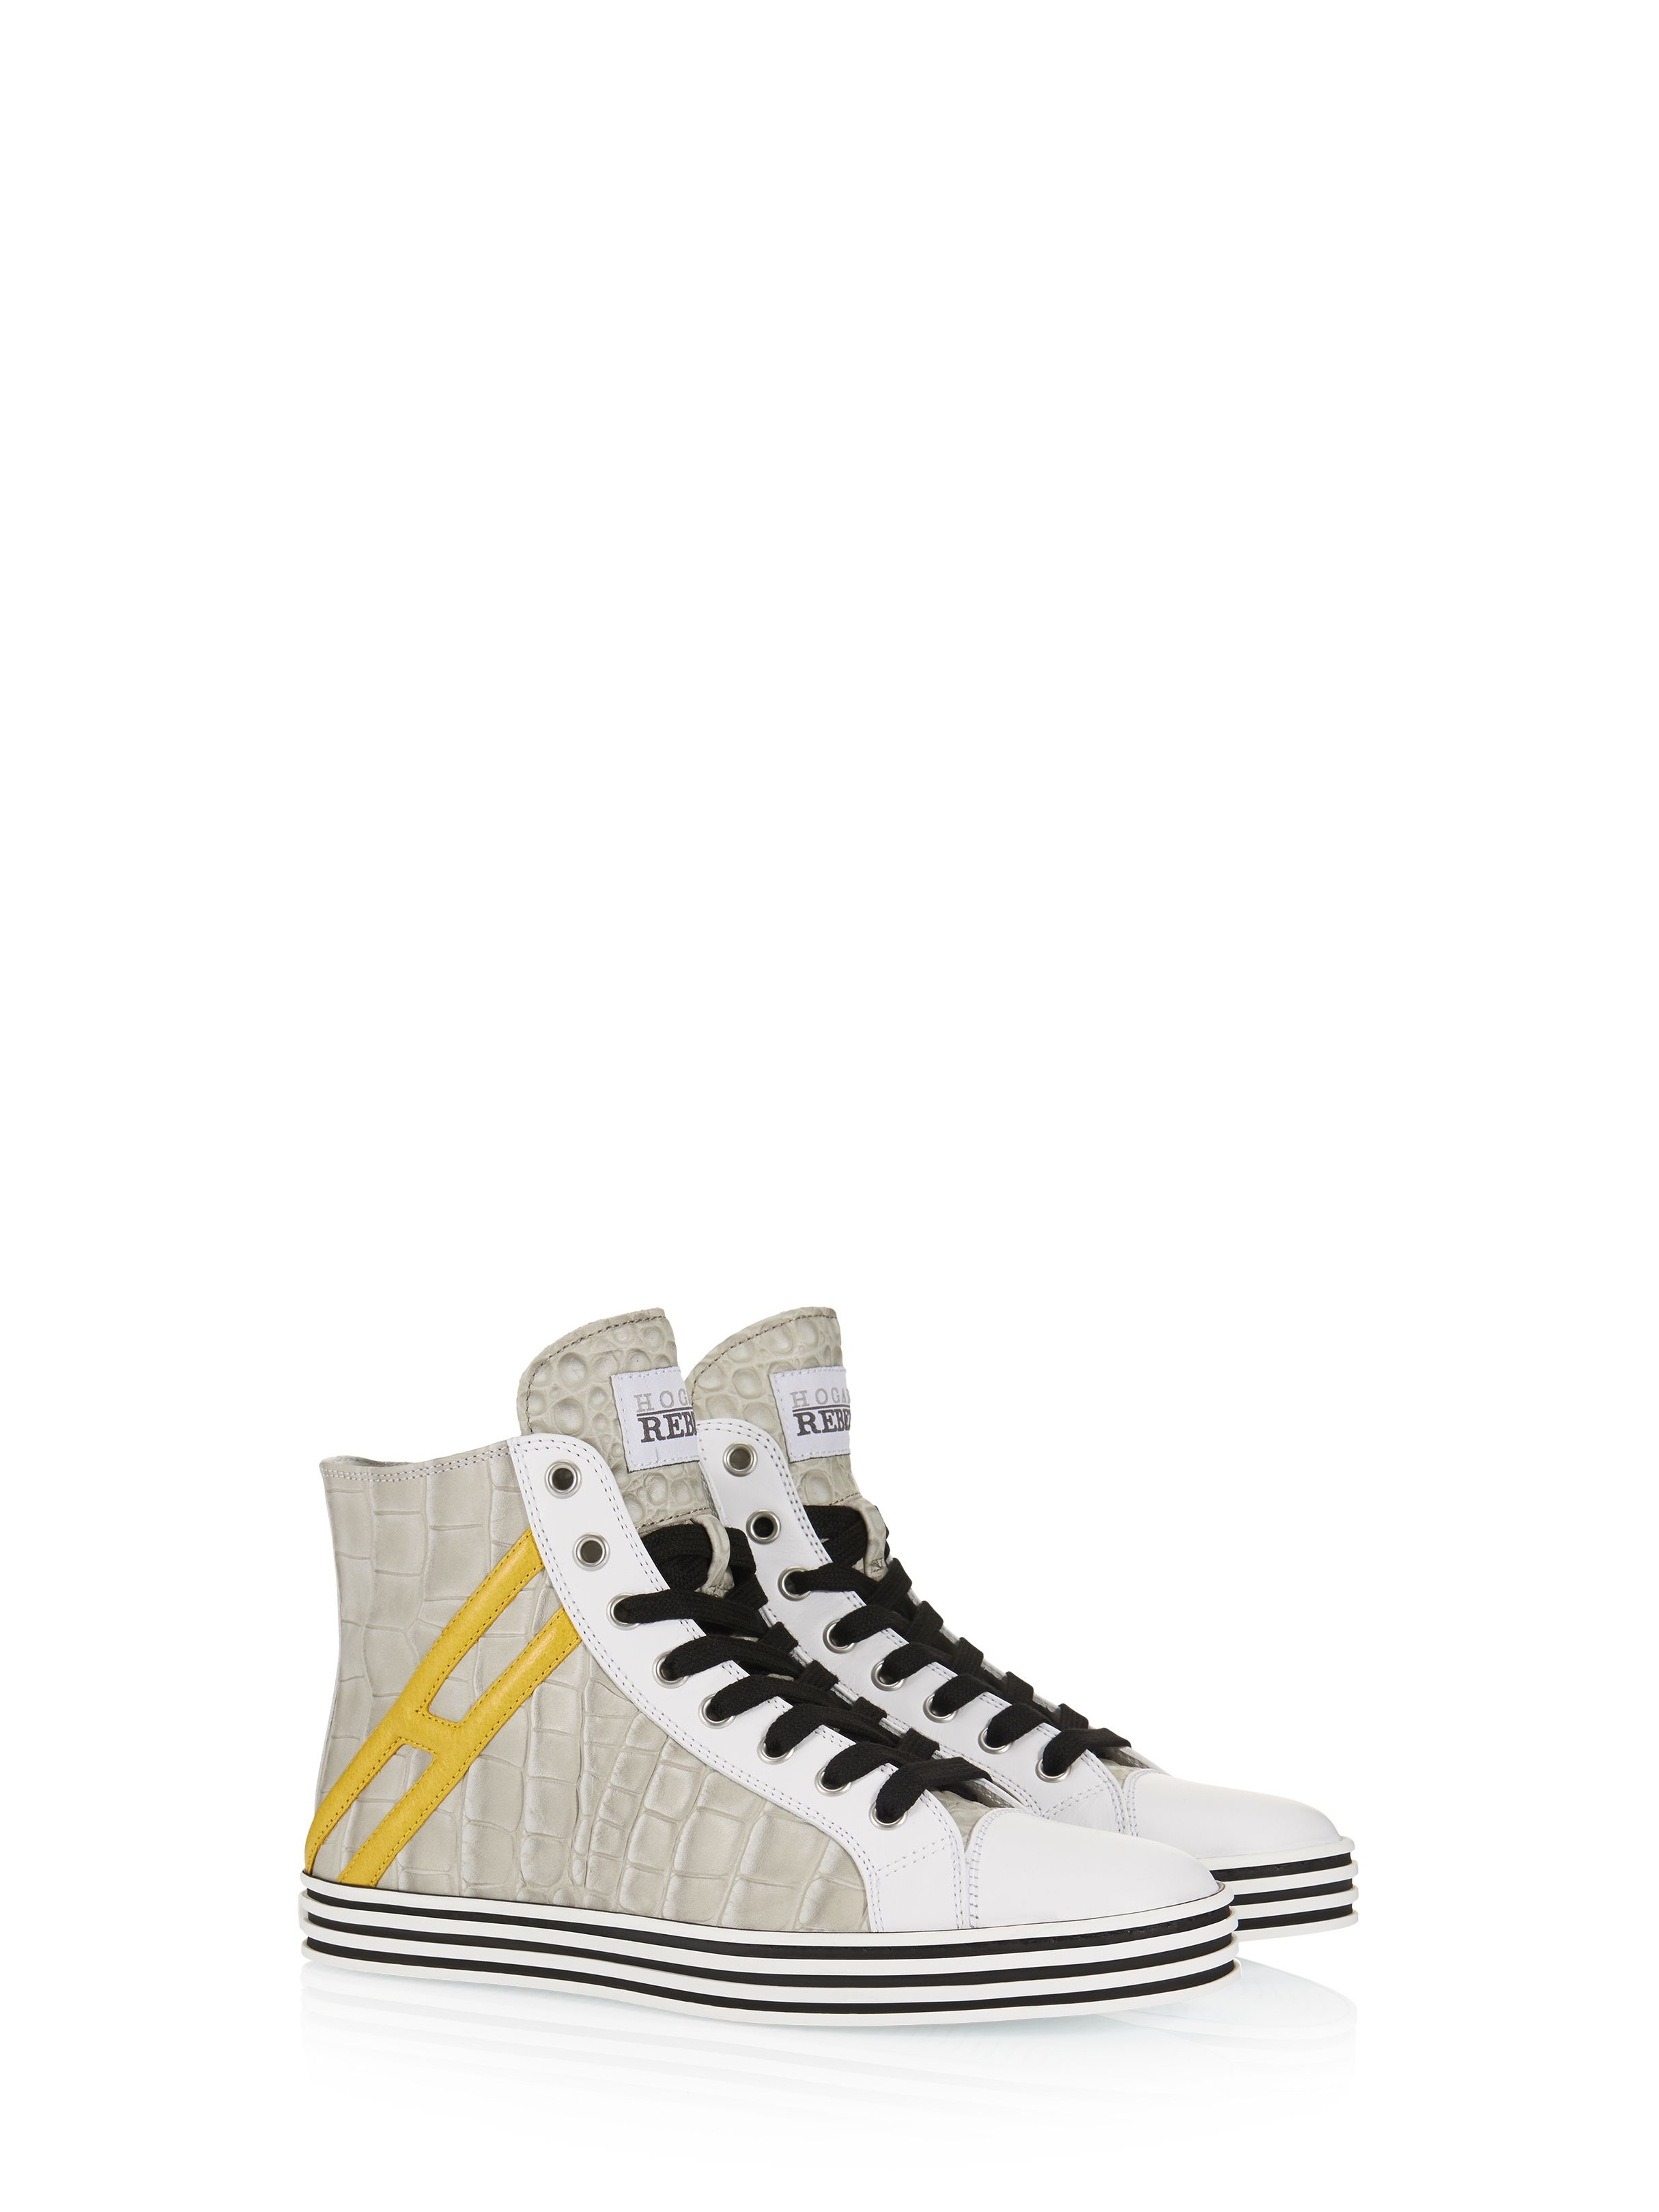 e1b7d0fa99b Hogan Rebel - R141 - HXW141095635UR574W - Croc-effect leather high-top  sneakers with